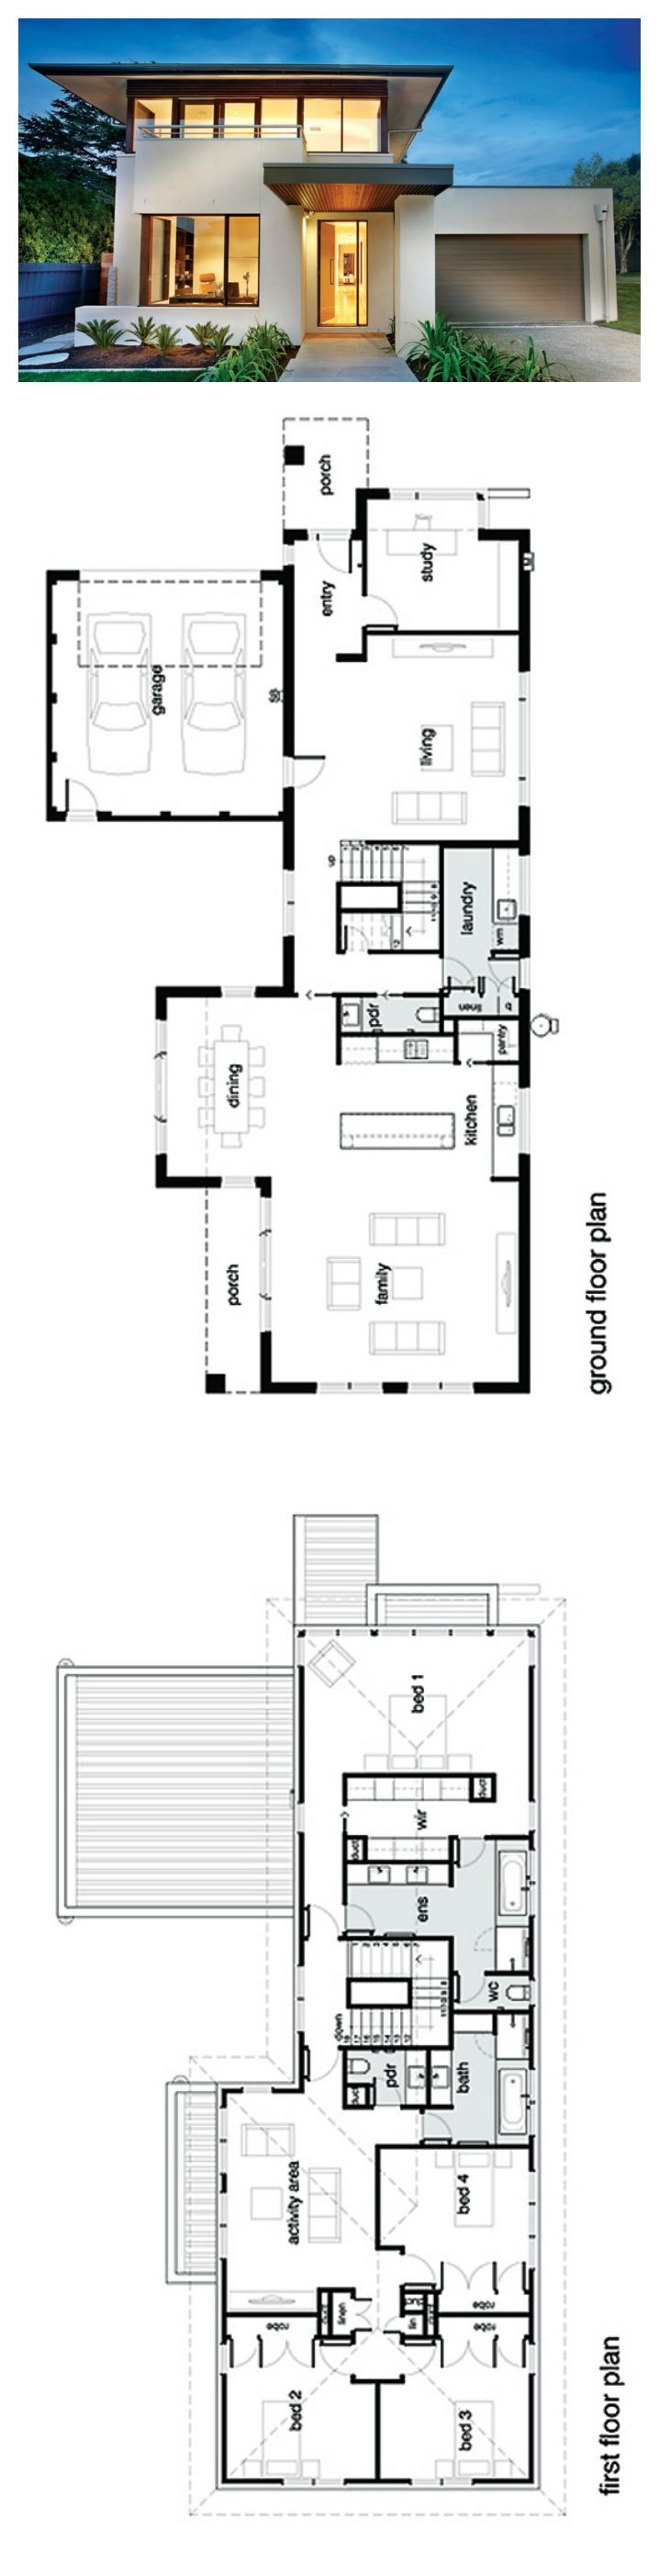 Best 25 modern house plans ideas on pinterest for Small house plans with master bedroom on first floor